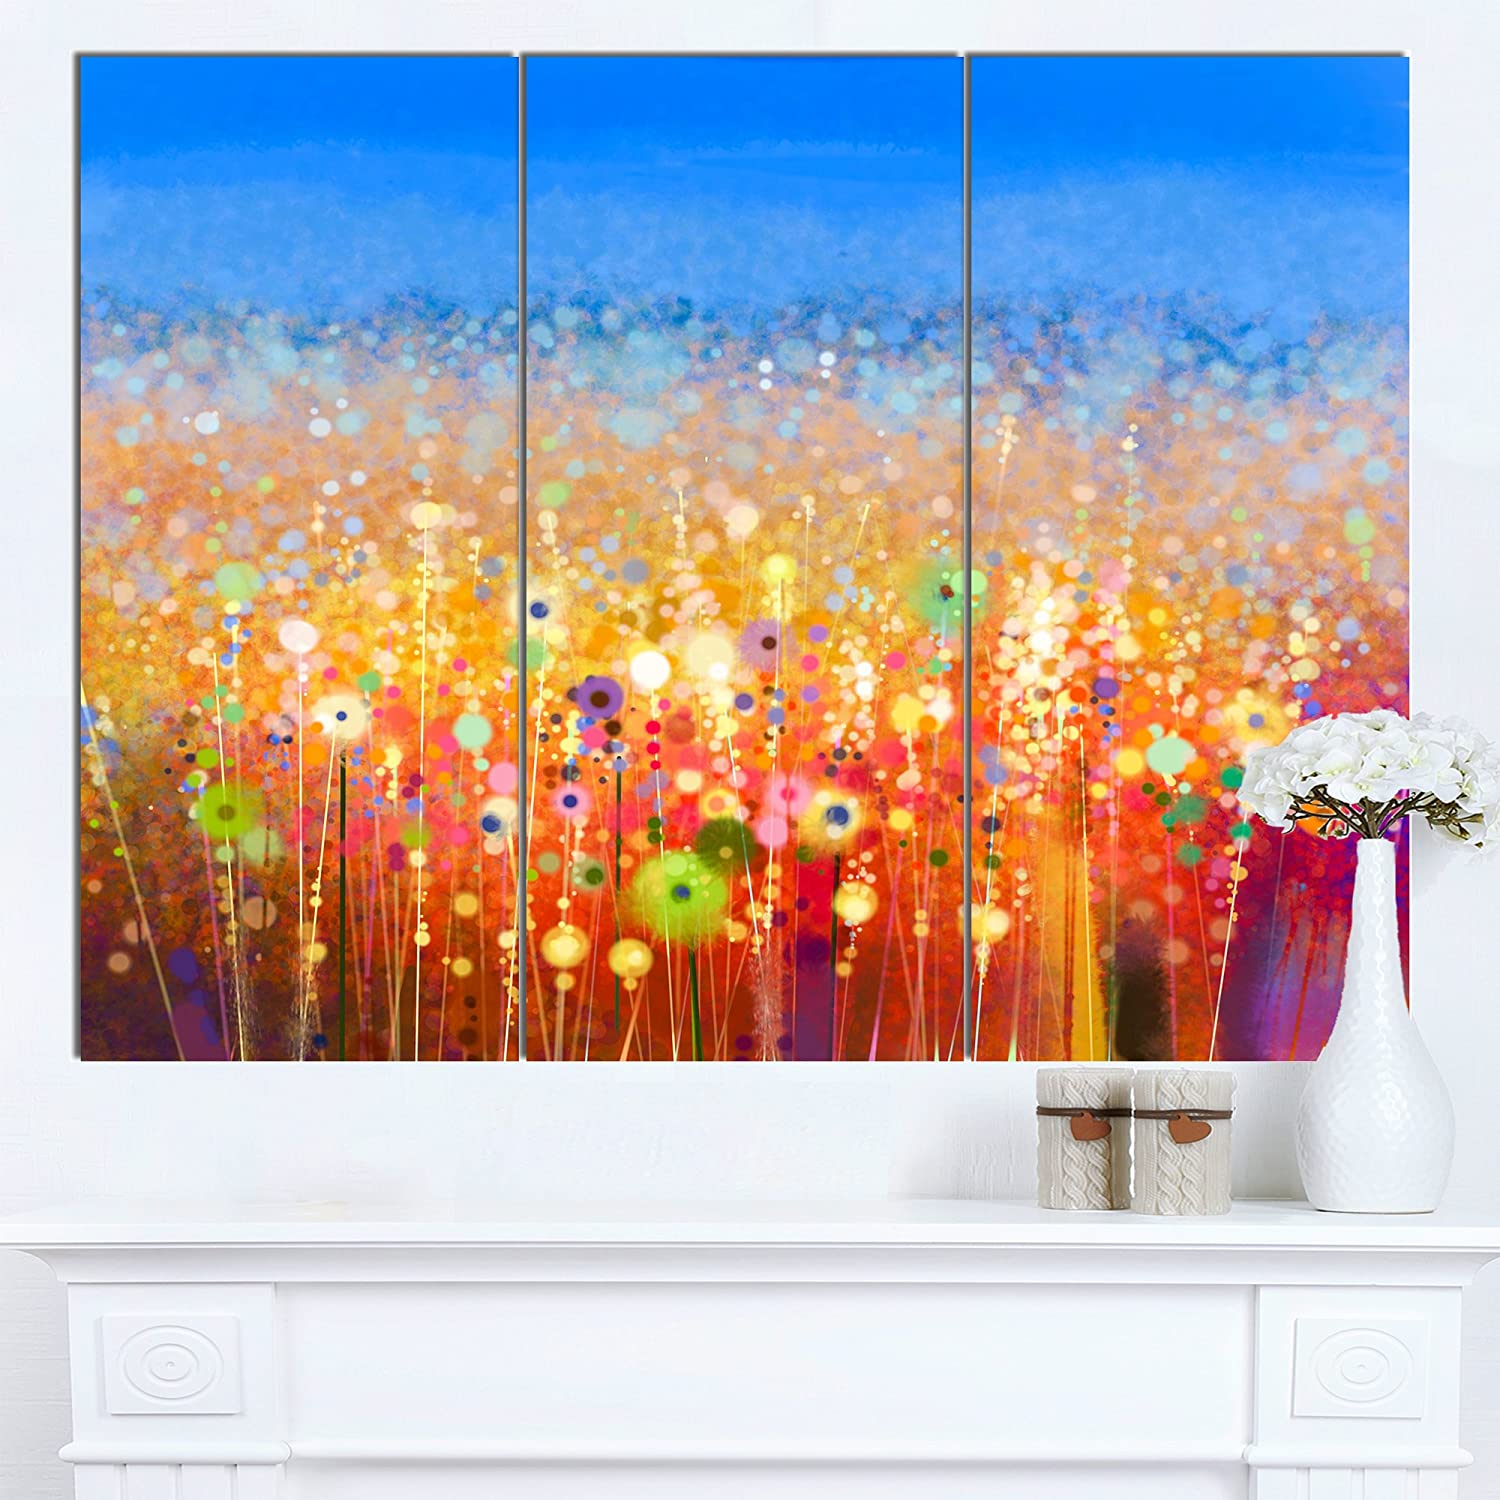 CDM product Designart PT15029-3P Abstract Flower Field Watercolor Painting Modern Floral Wall Art Canvas,36x28 big image